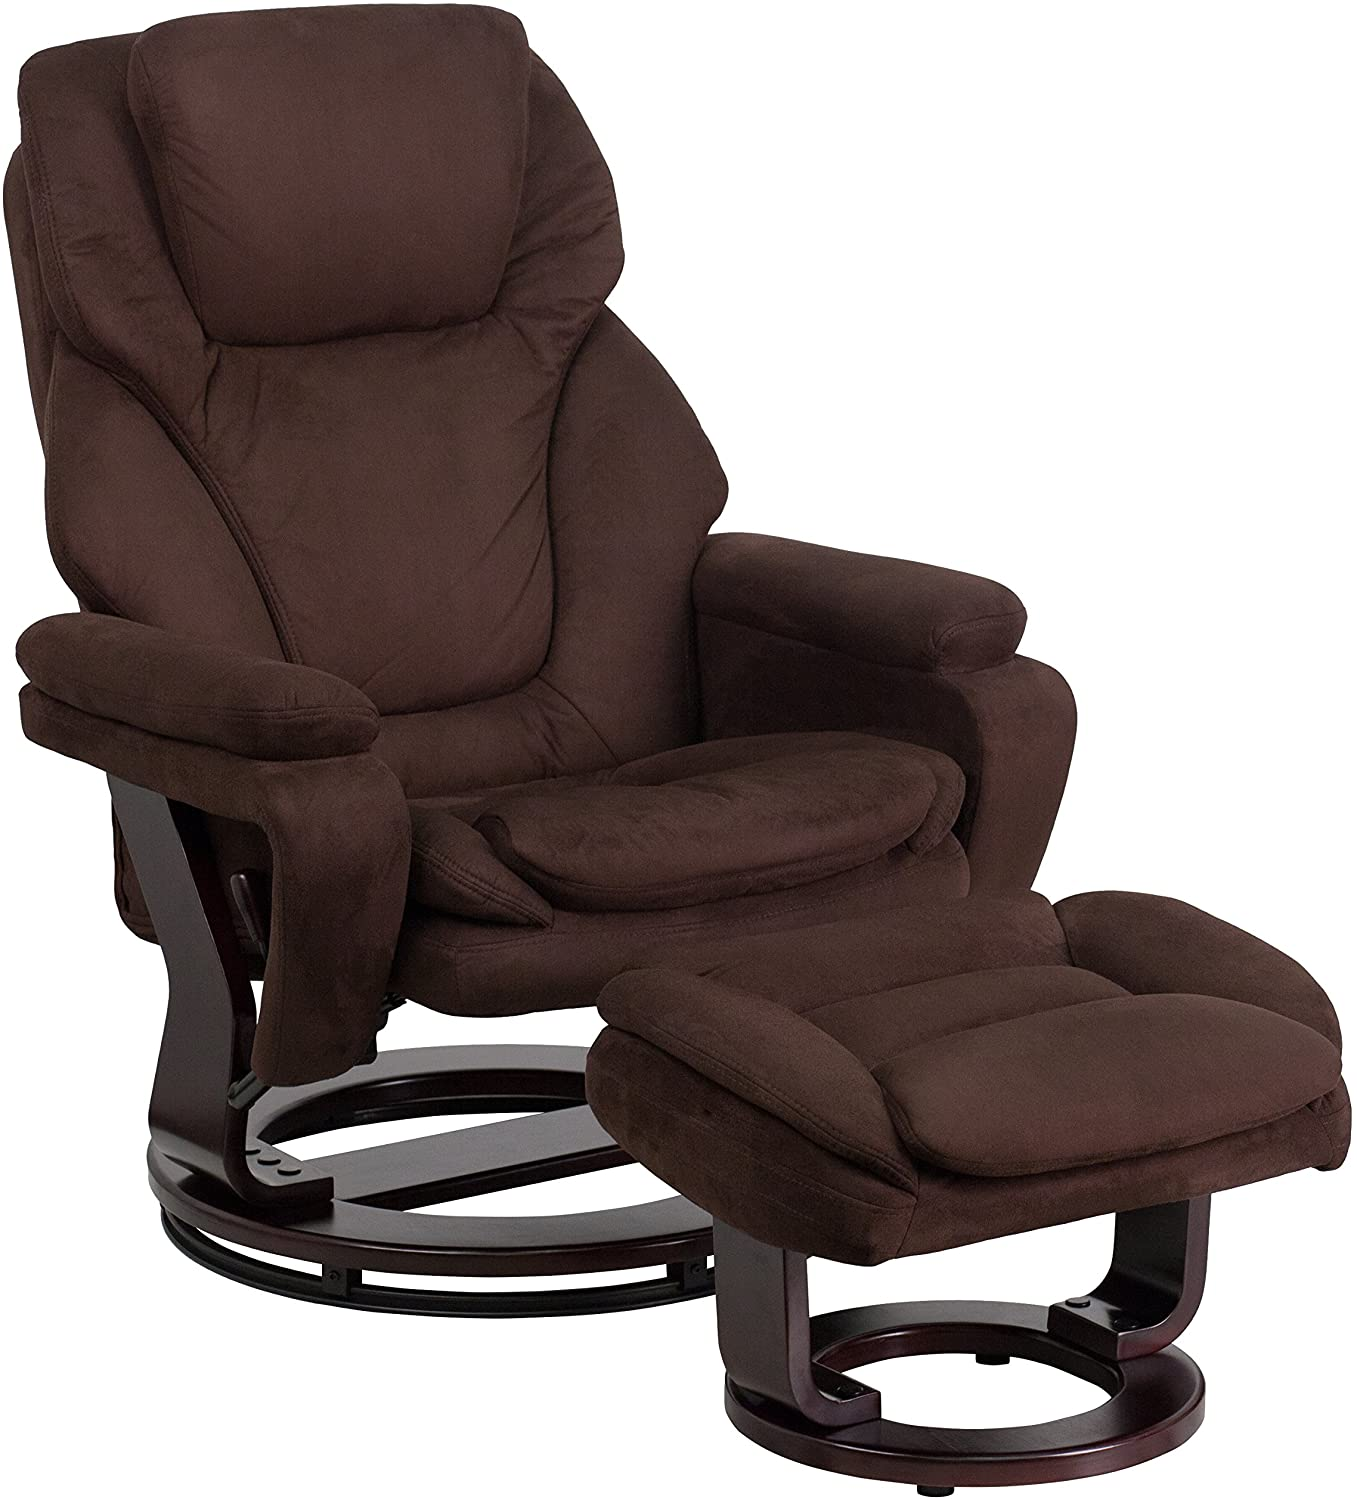 My Friendly Office MFO Contemporary Brown Microfiber Recliner and Ottoman with Swiveling Mahogany Wood Base